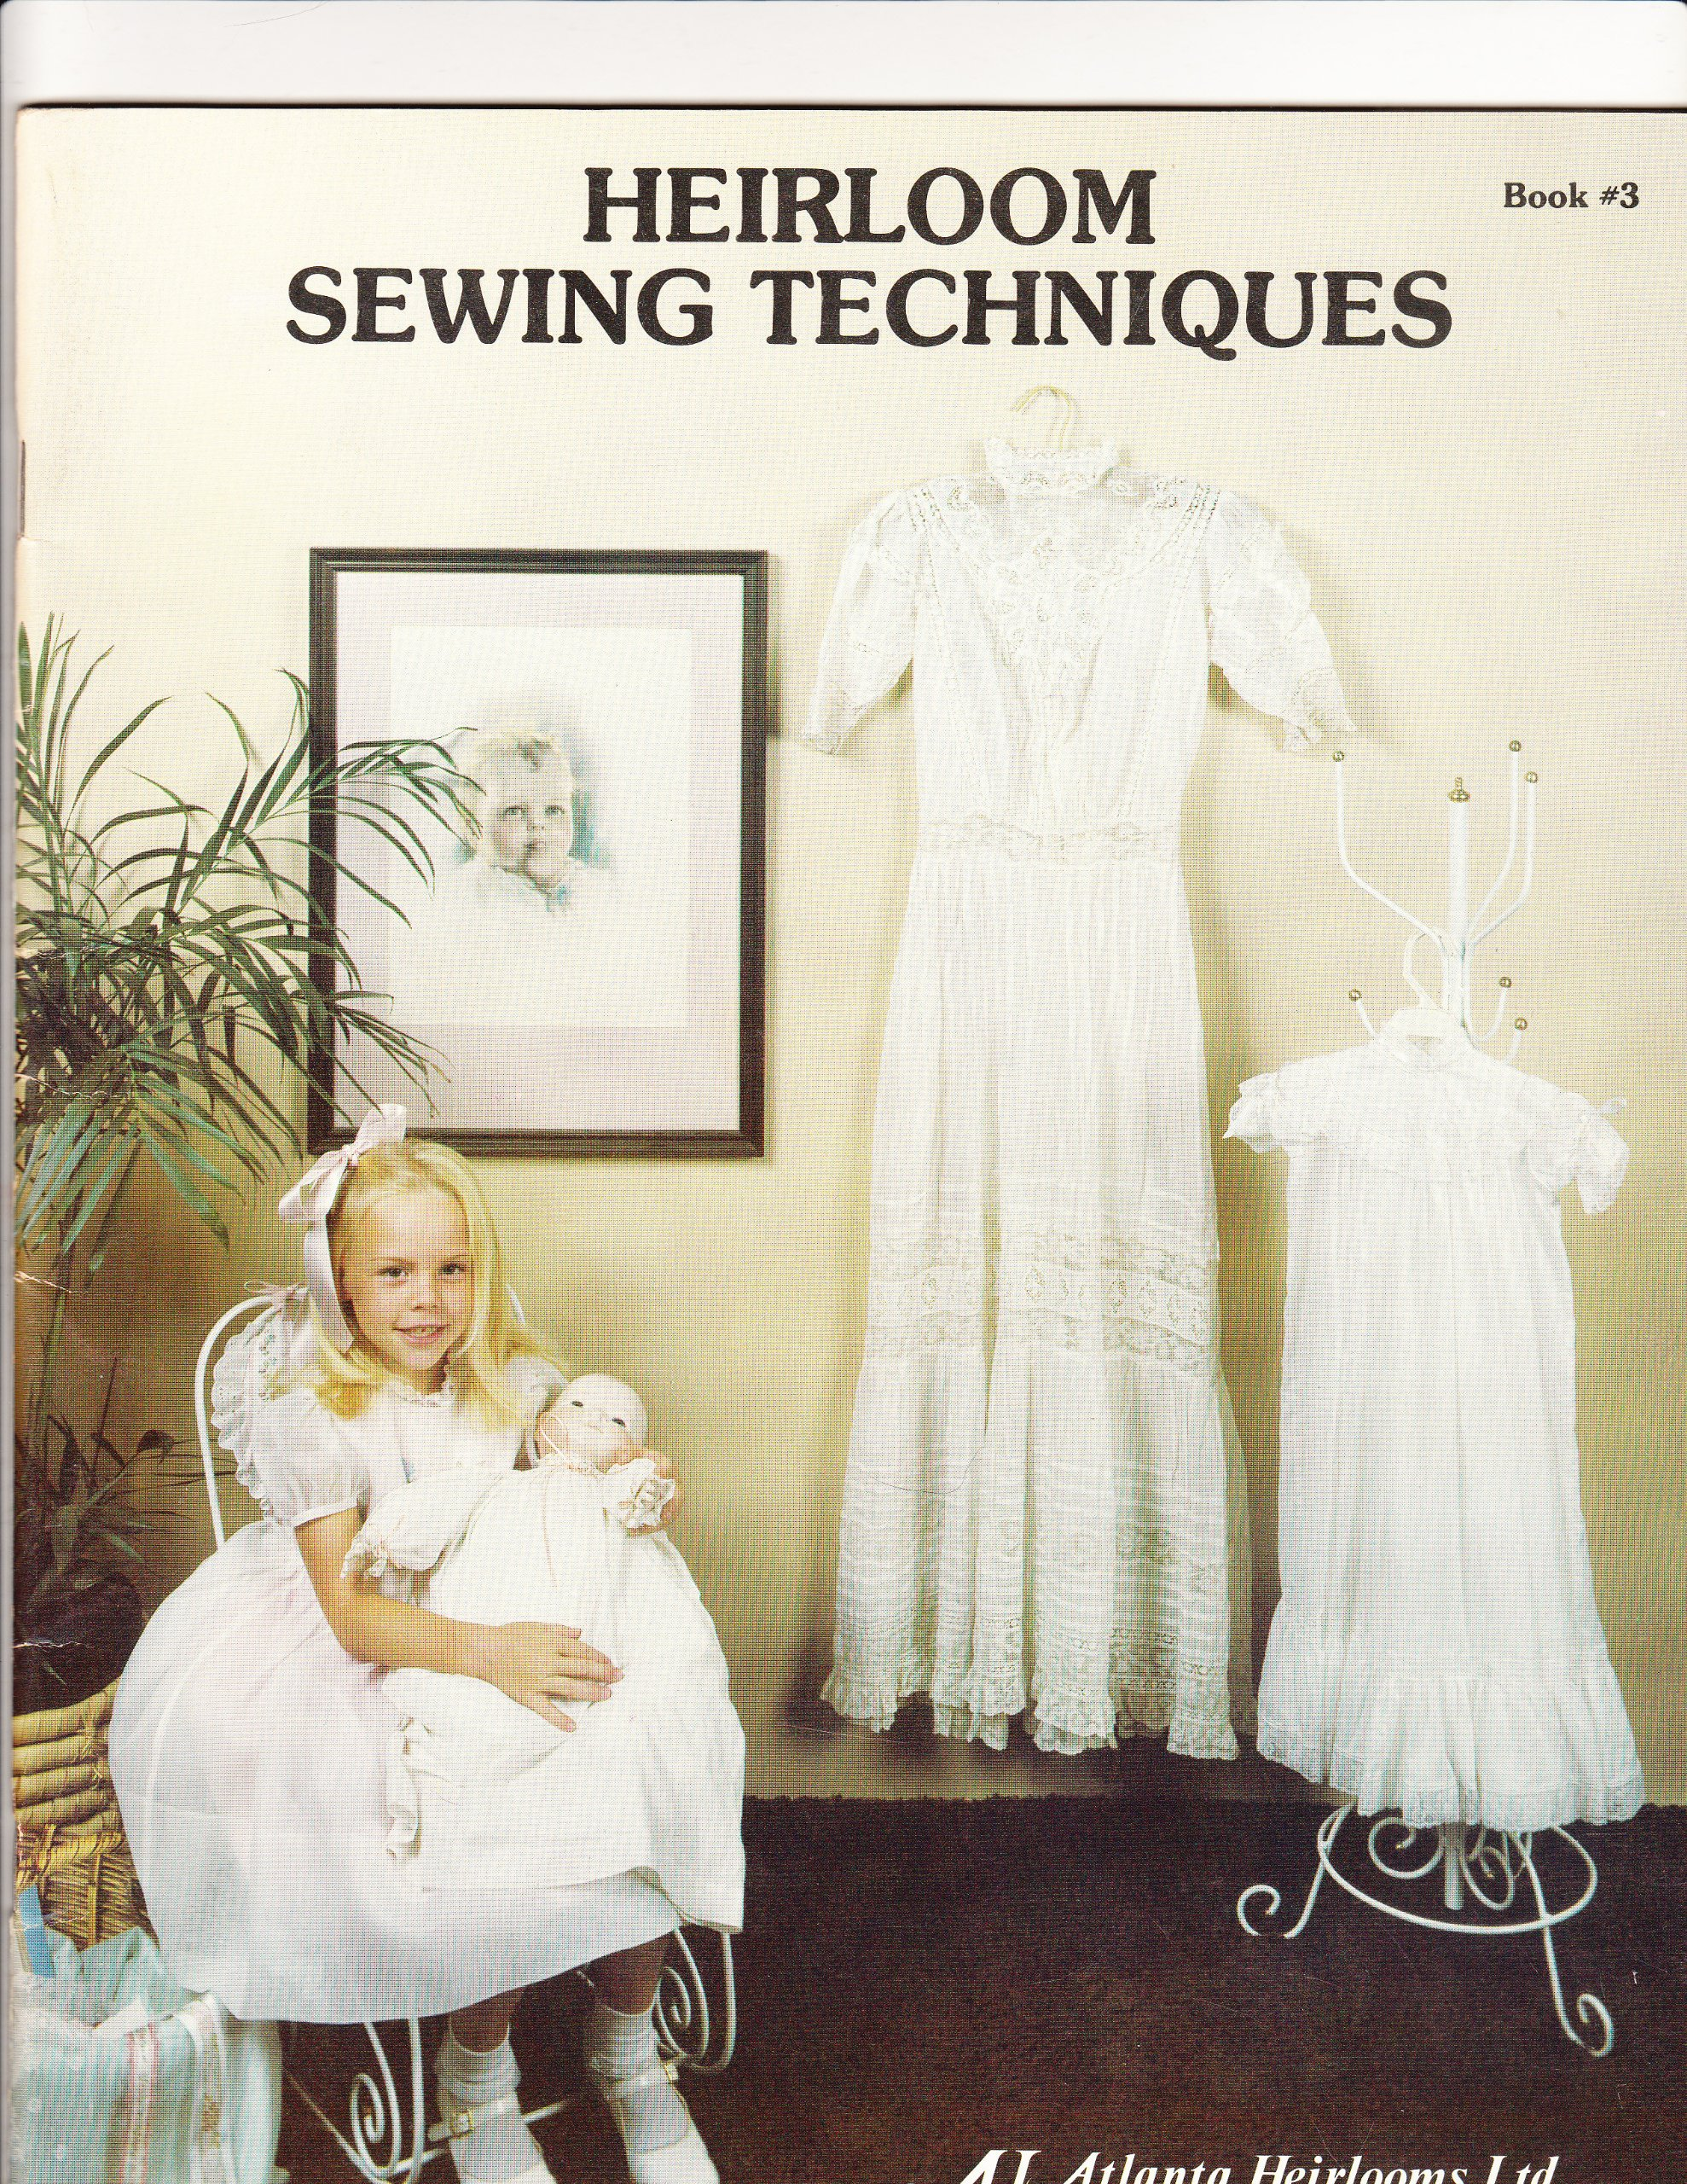 Heirloom Sewing Techniques Book #3: Judith C. Wood: Amazon.com: Books